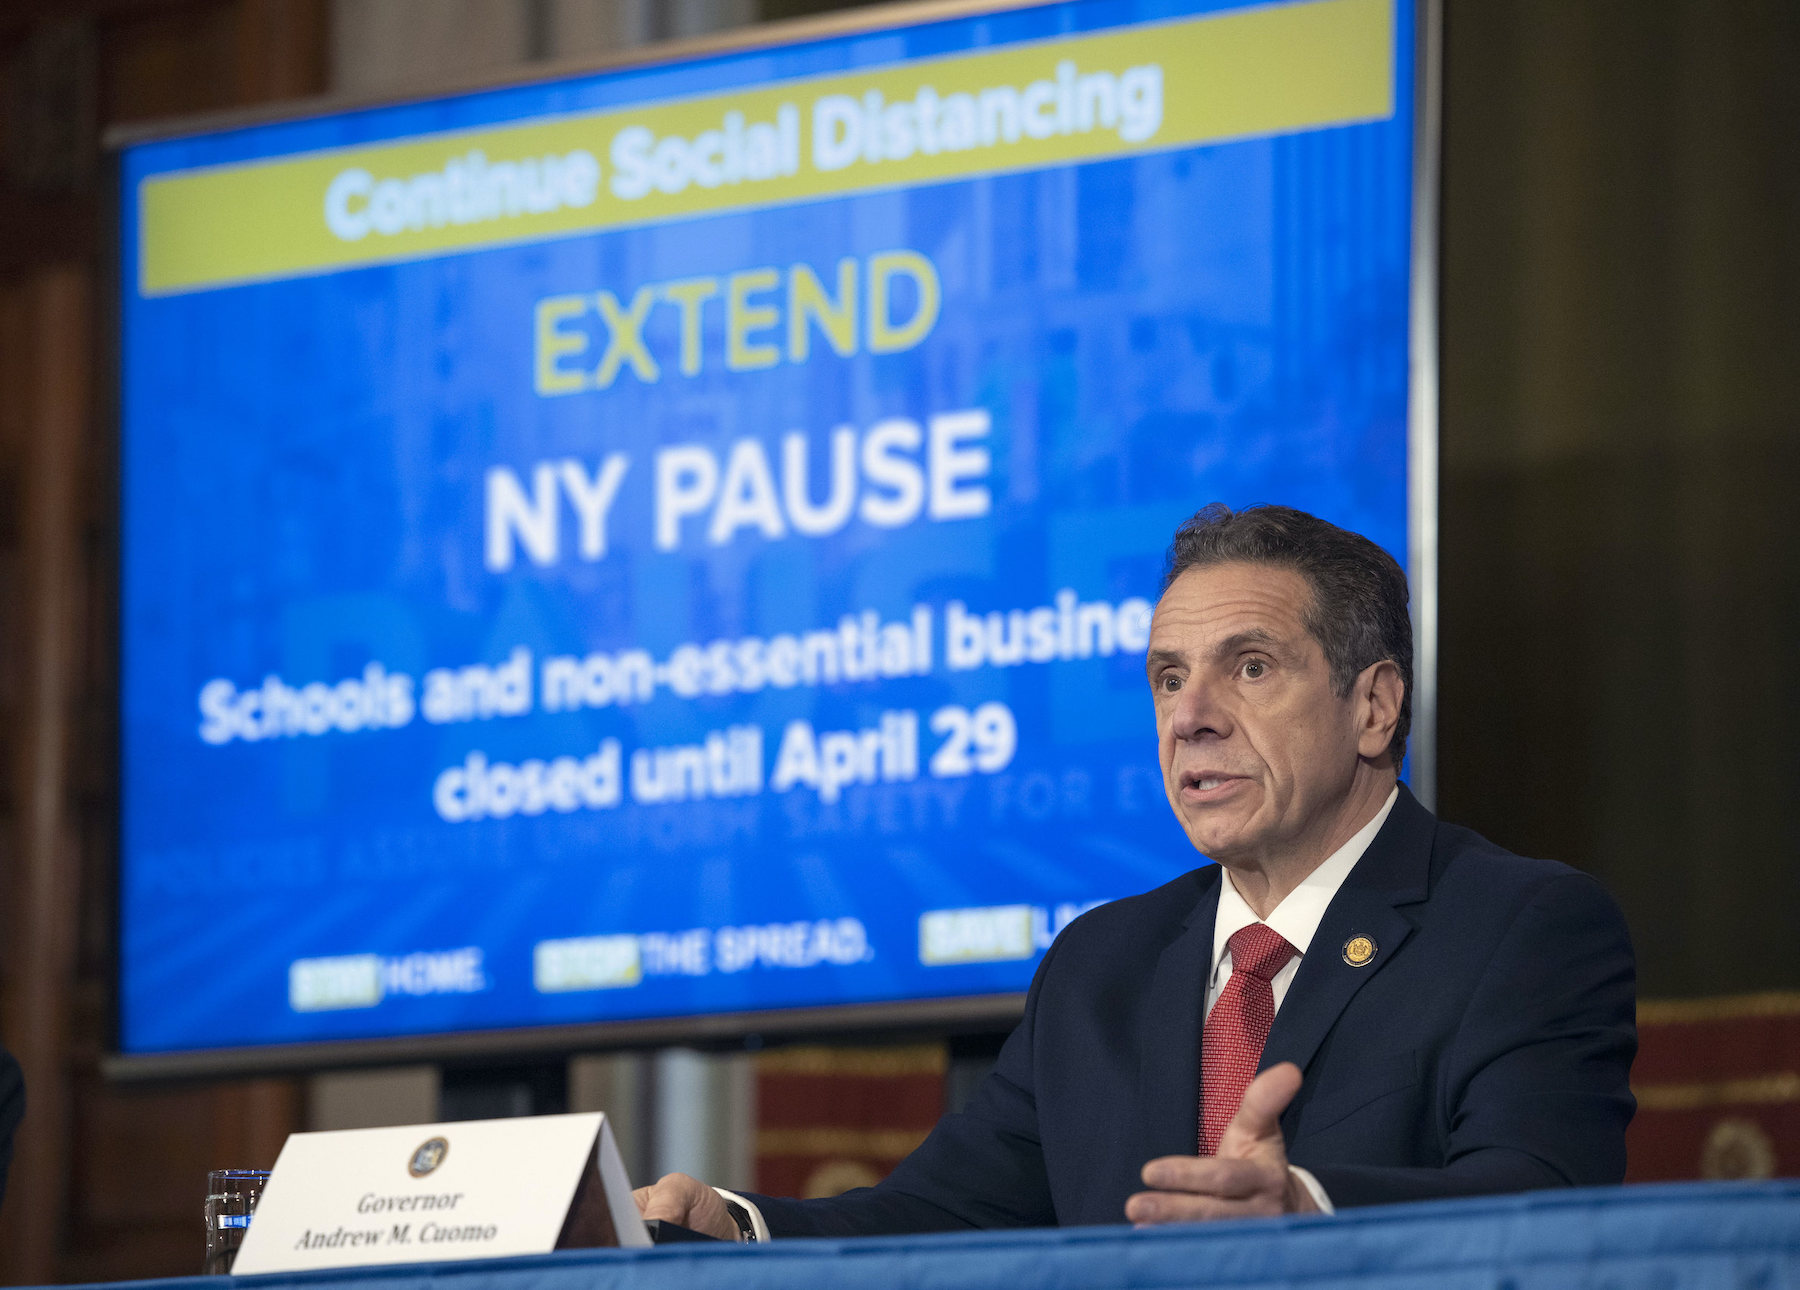 Gov. Andrew M. Cuomo provides a coronavirus update during a press conference in the Red Room at the State Capitol. (Photo by Mike Groll/Office of Gov. Andrew M. Cuomo)